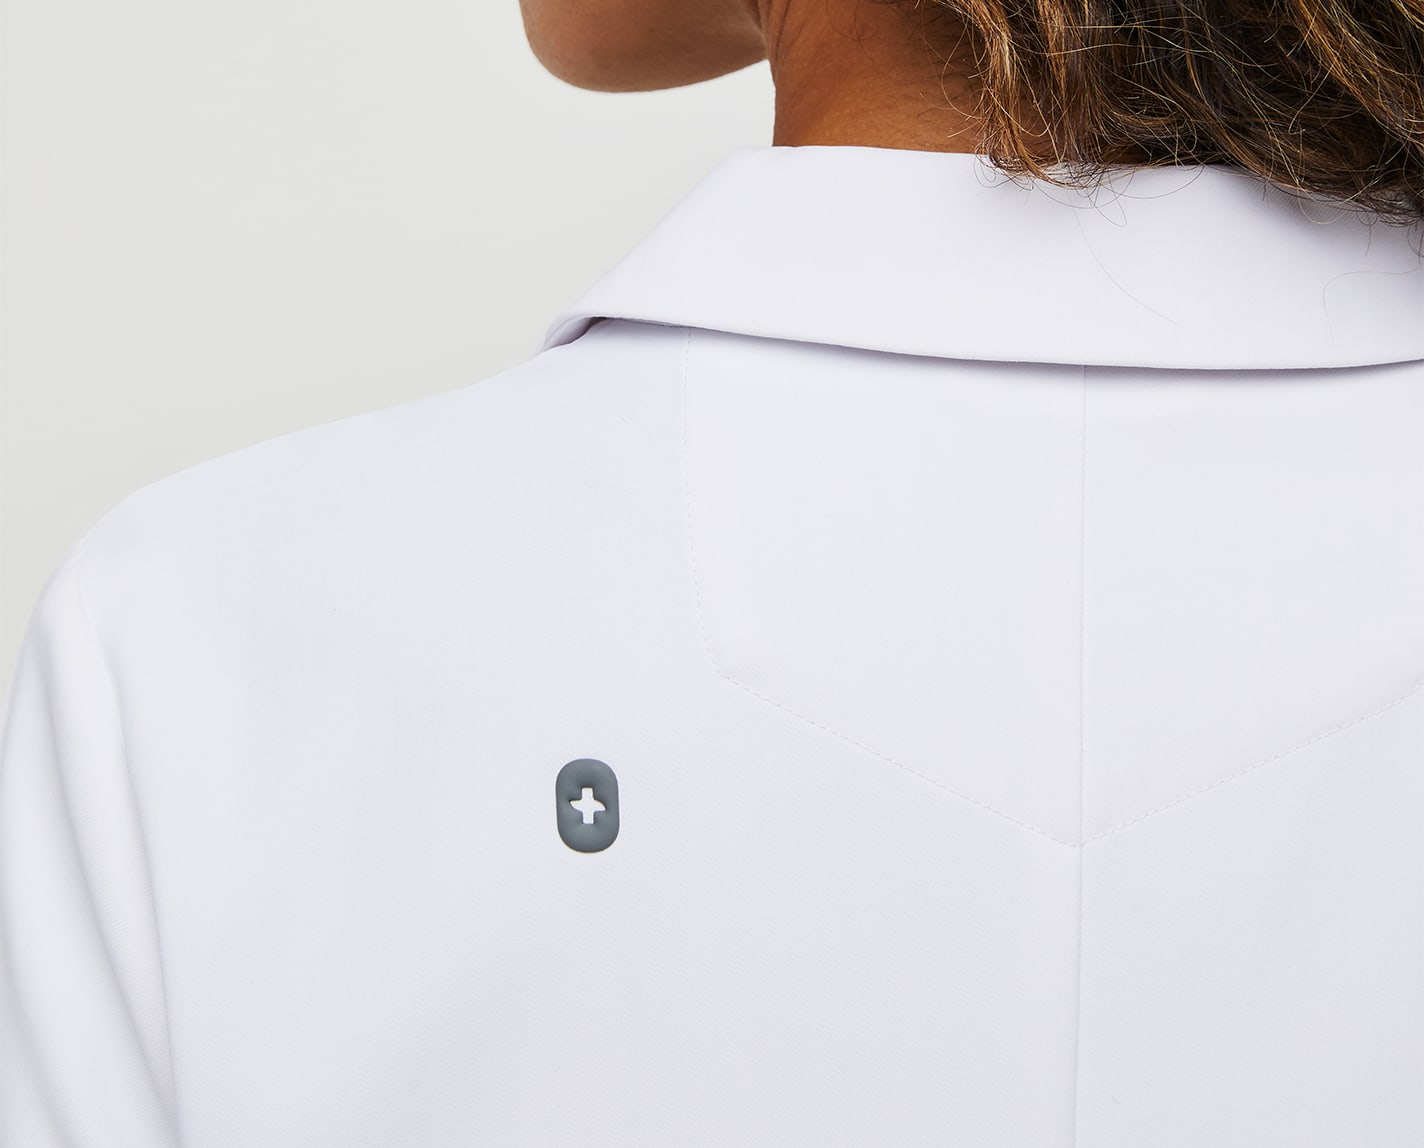 Kind of like a good sequel. The Bellevue Slim Short Lab Coat has similar features as the original — eight pockets, machine washable, anti-wrinkle, anti-static — but was designed with a slim fit. Professional and stylish all at once.